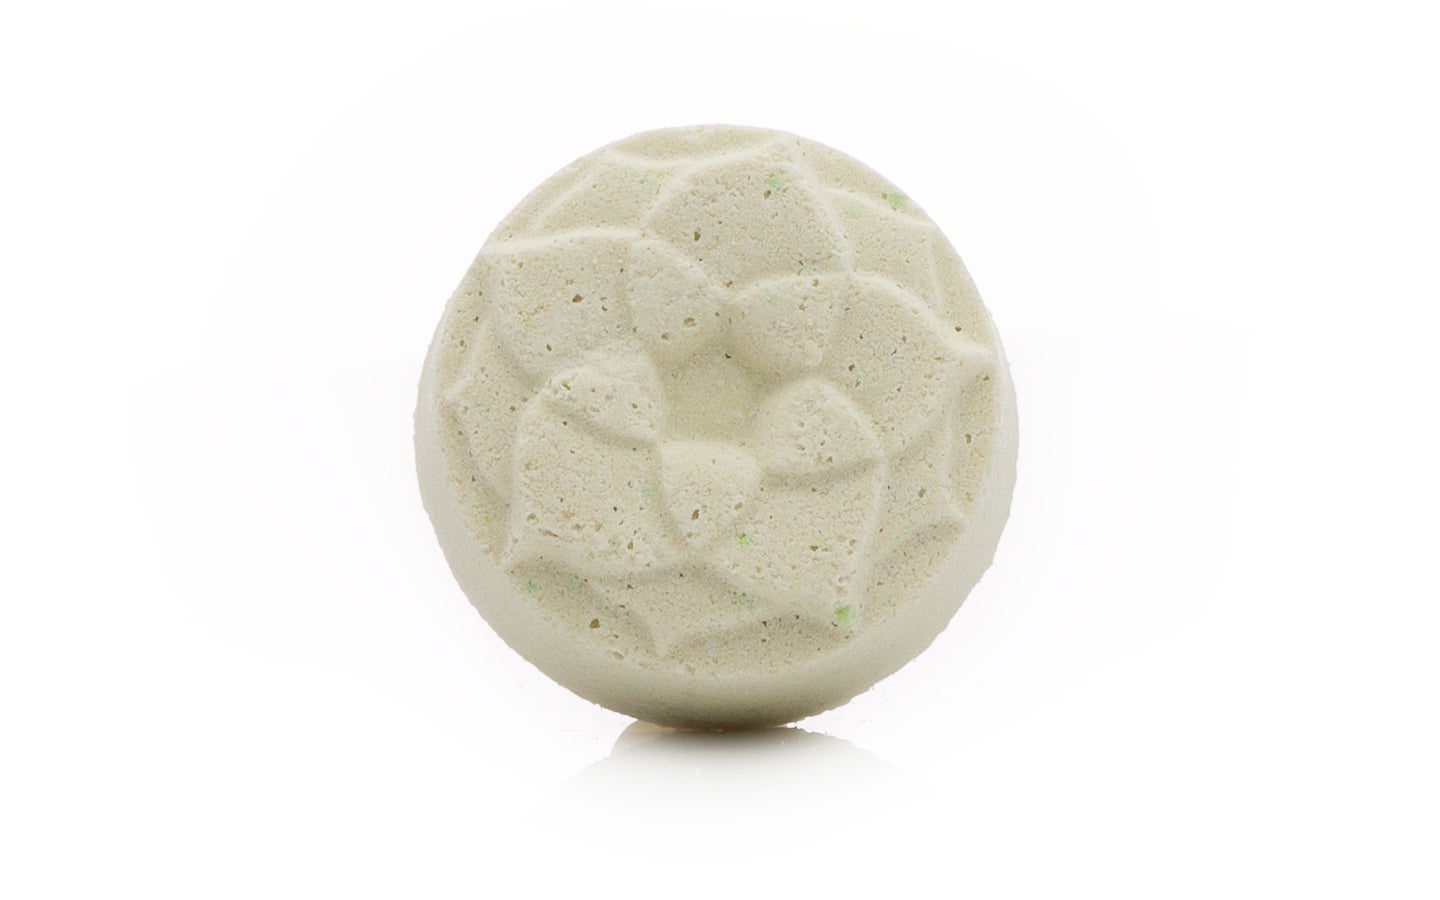 shower steamer, aromatherapy, bath bomb, white kaolin clay, shower, bath, bath and body, patchouli shower steamer, tea tree shower steamer, patchouli and tea tree shower steamer, essential oils